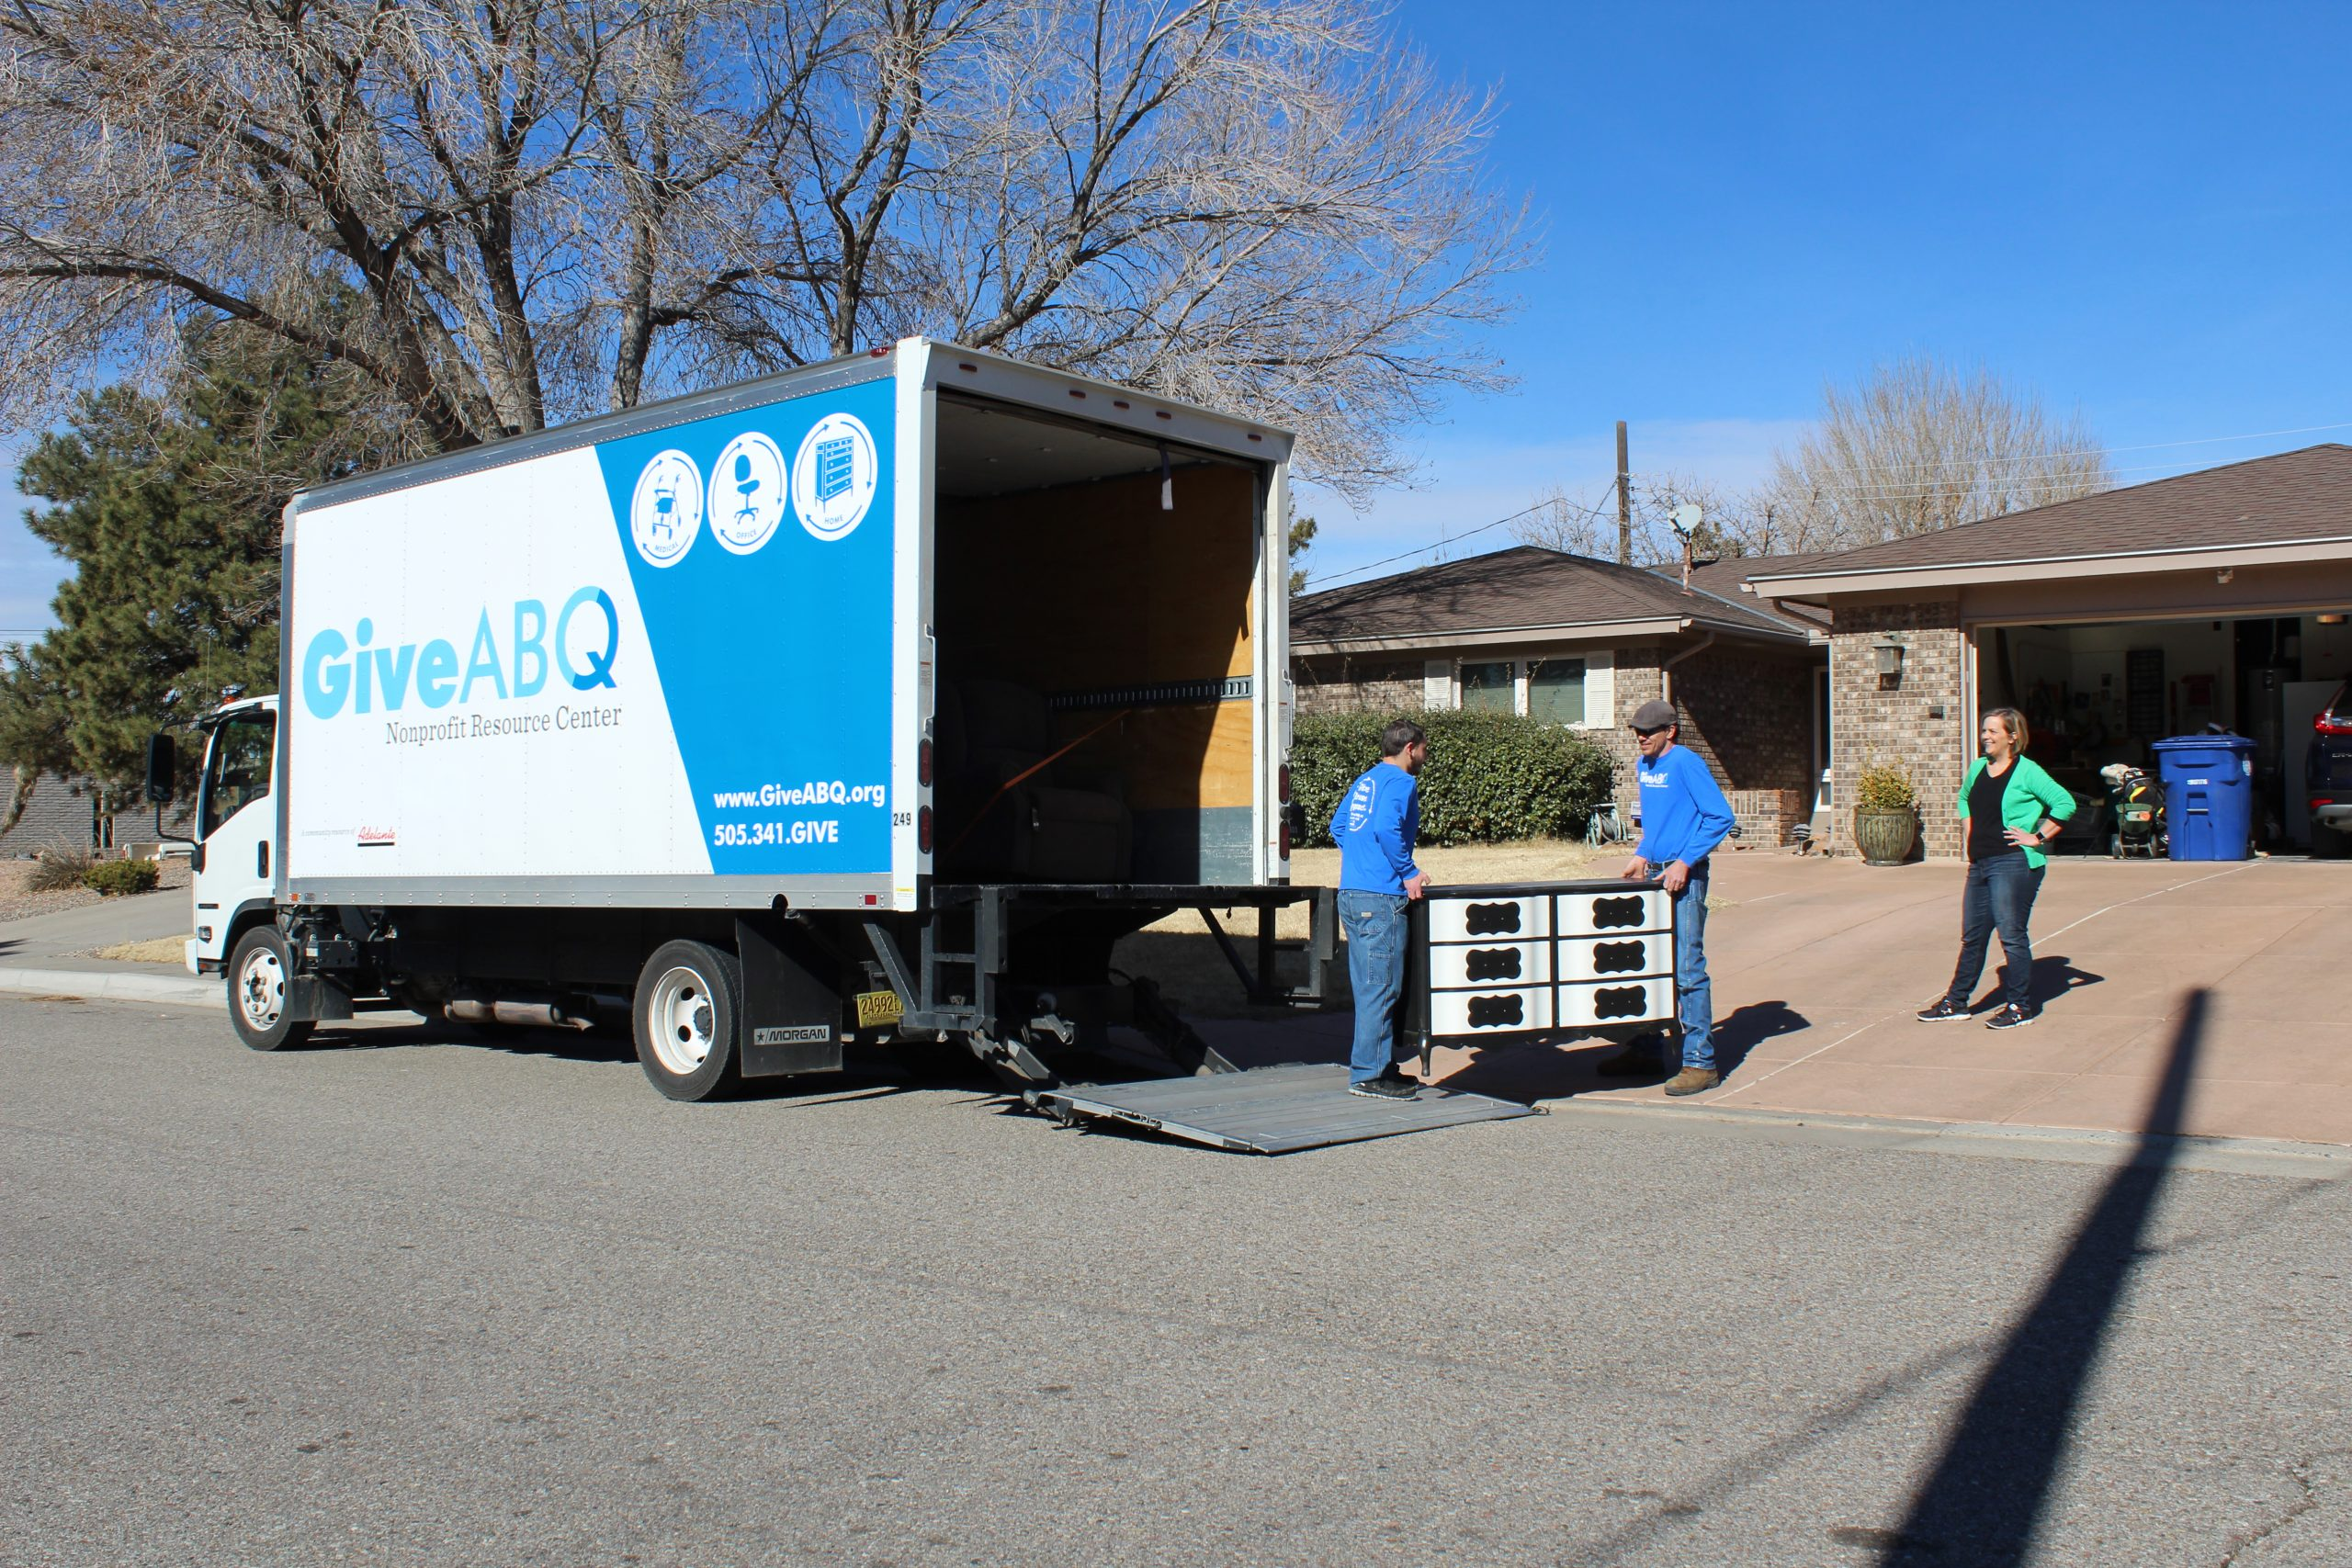 A woman stands in her driveway to the right of the GiveABQ truck watching the GiveABQ employees load a dresser that she is donating. She has her hand on her hips. She is happy that she is donating her dresser to GiveABQ.